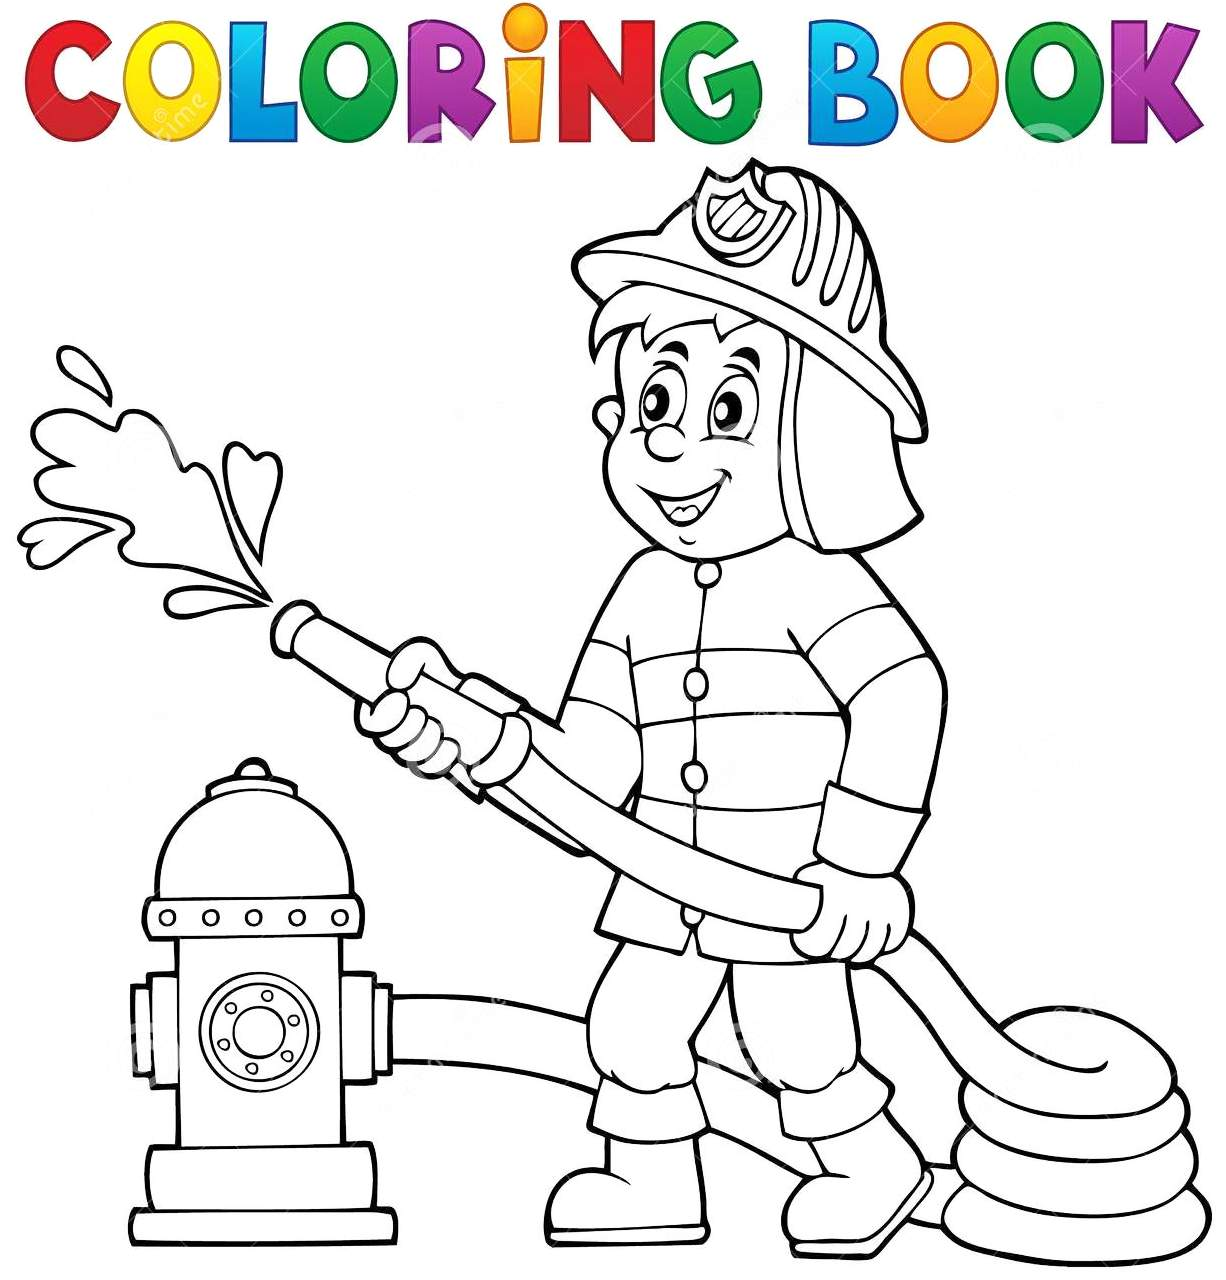 Firefighter Coloring Book Printable